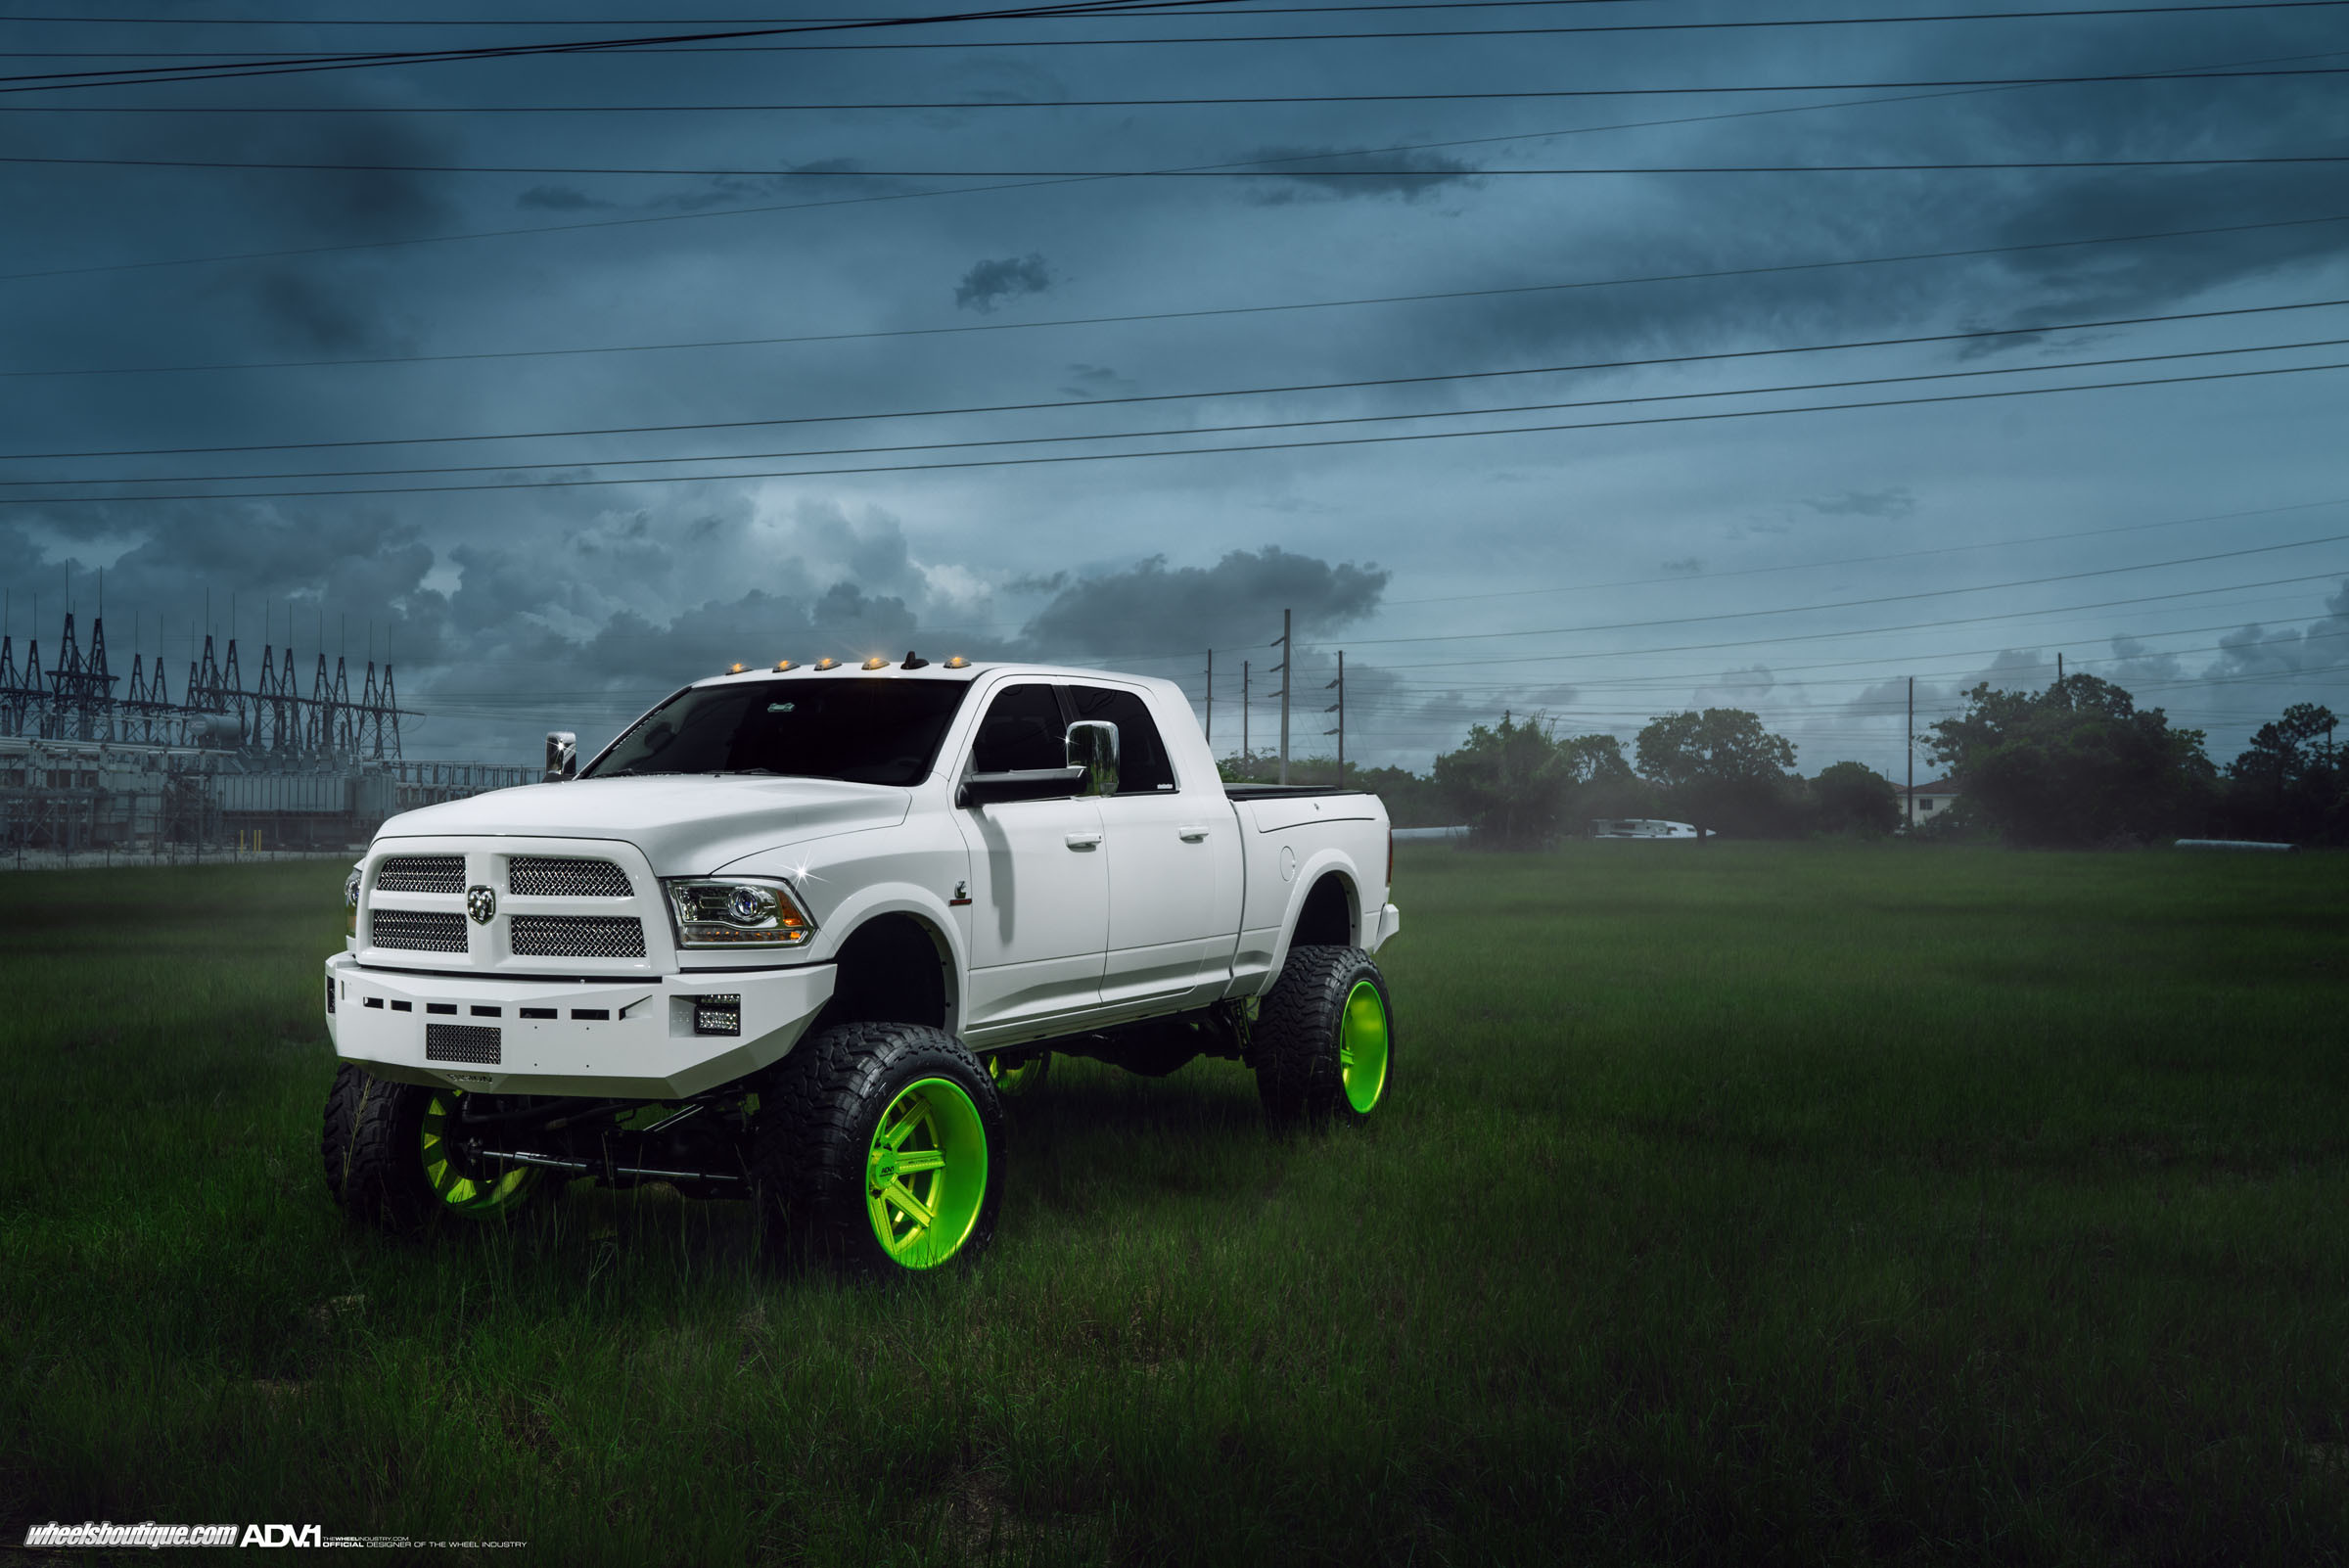 dodge ram wallpaper cricket life cycle diagram lifted truck hd 49 43 images